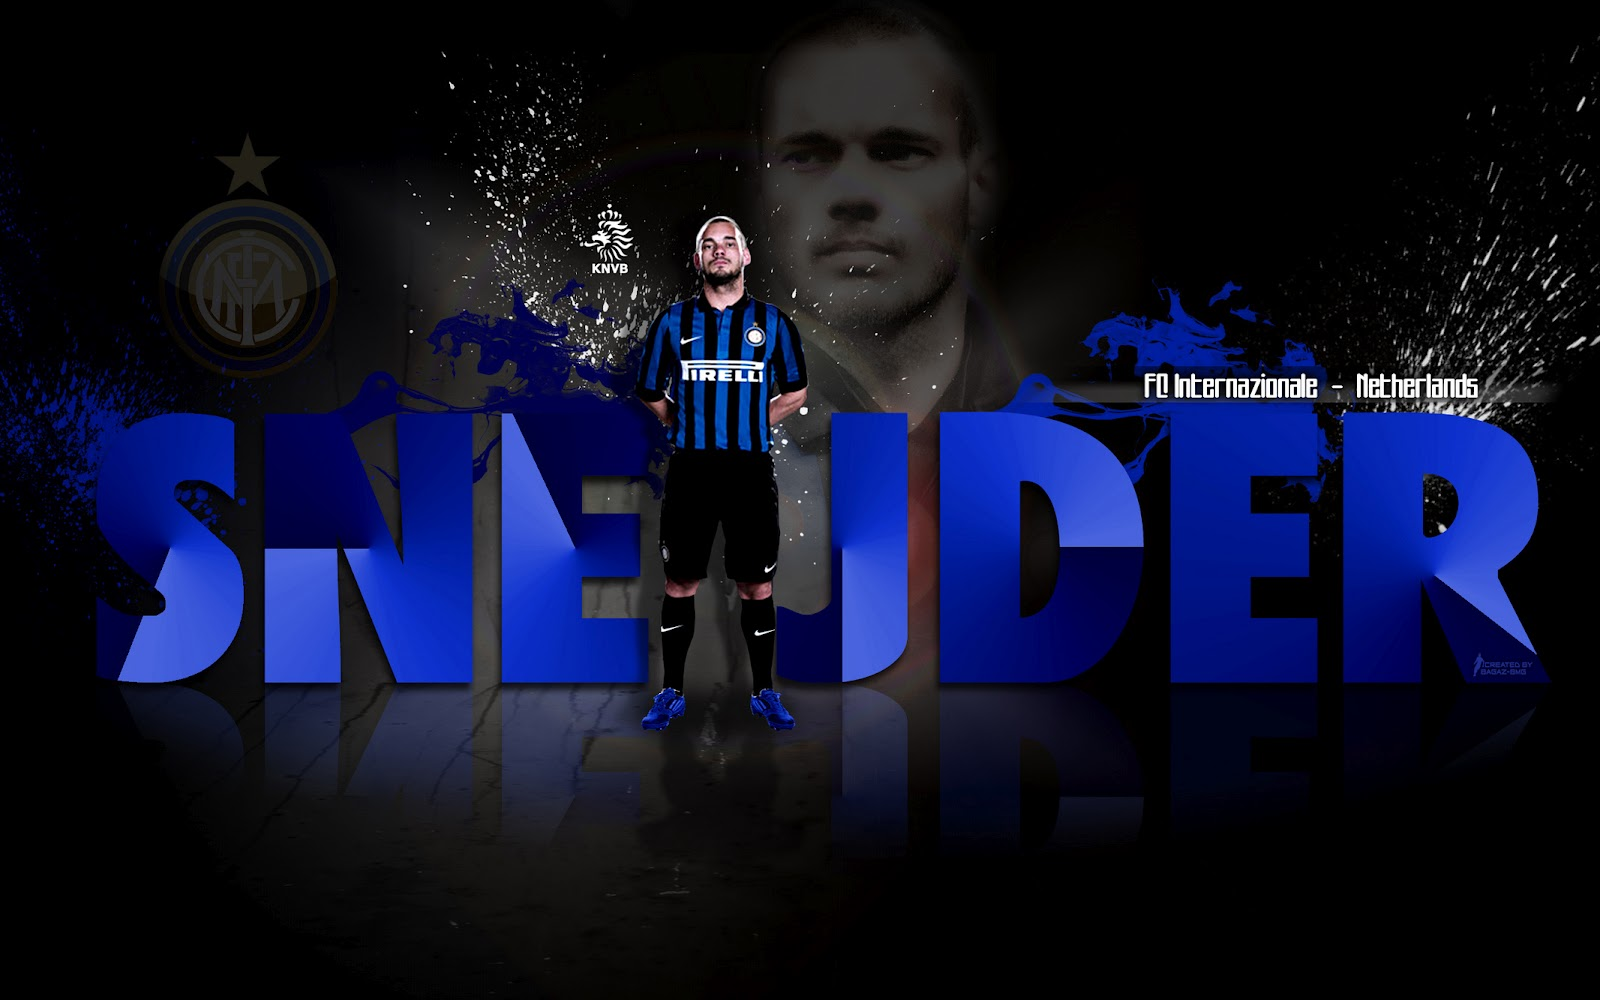 inter milan wallpaper 2012 - photo #27